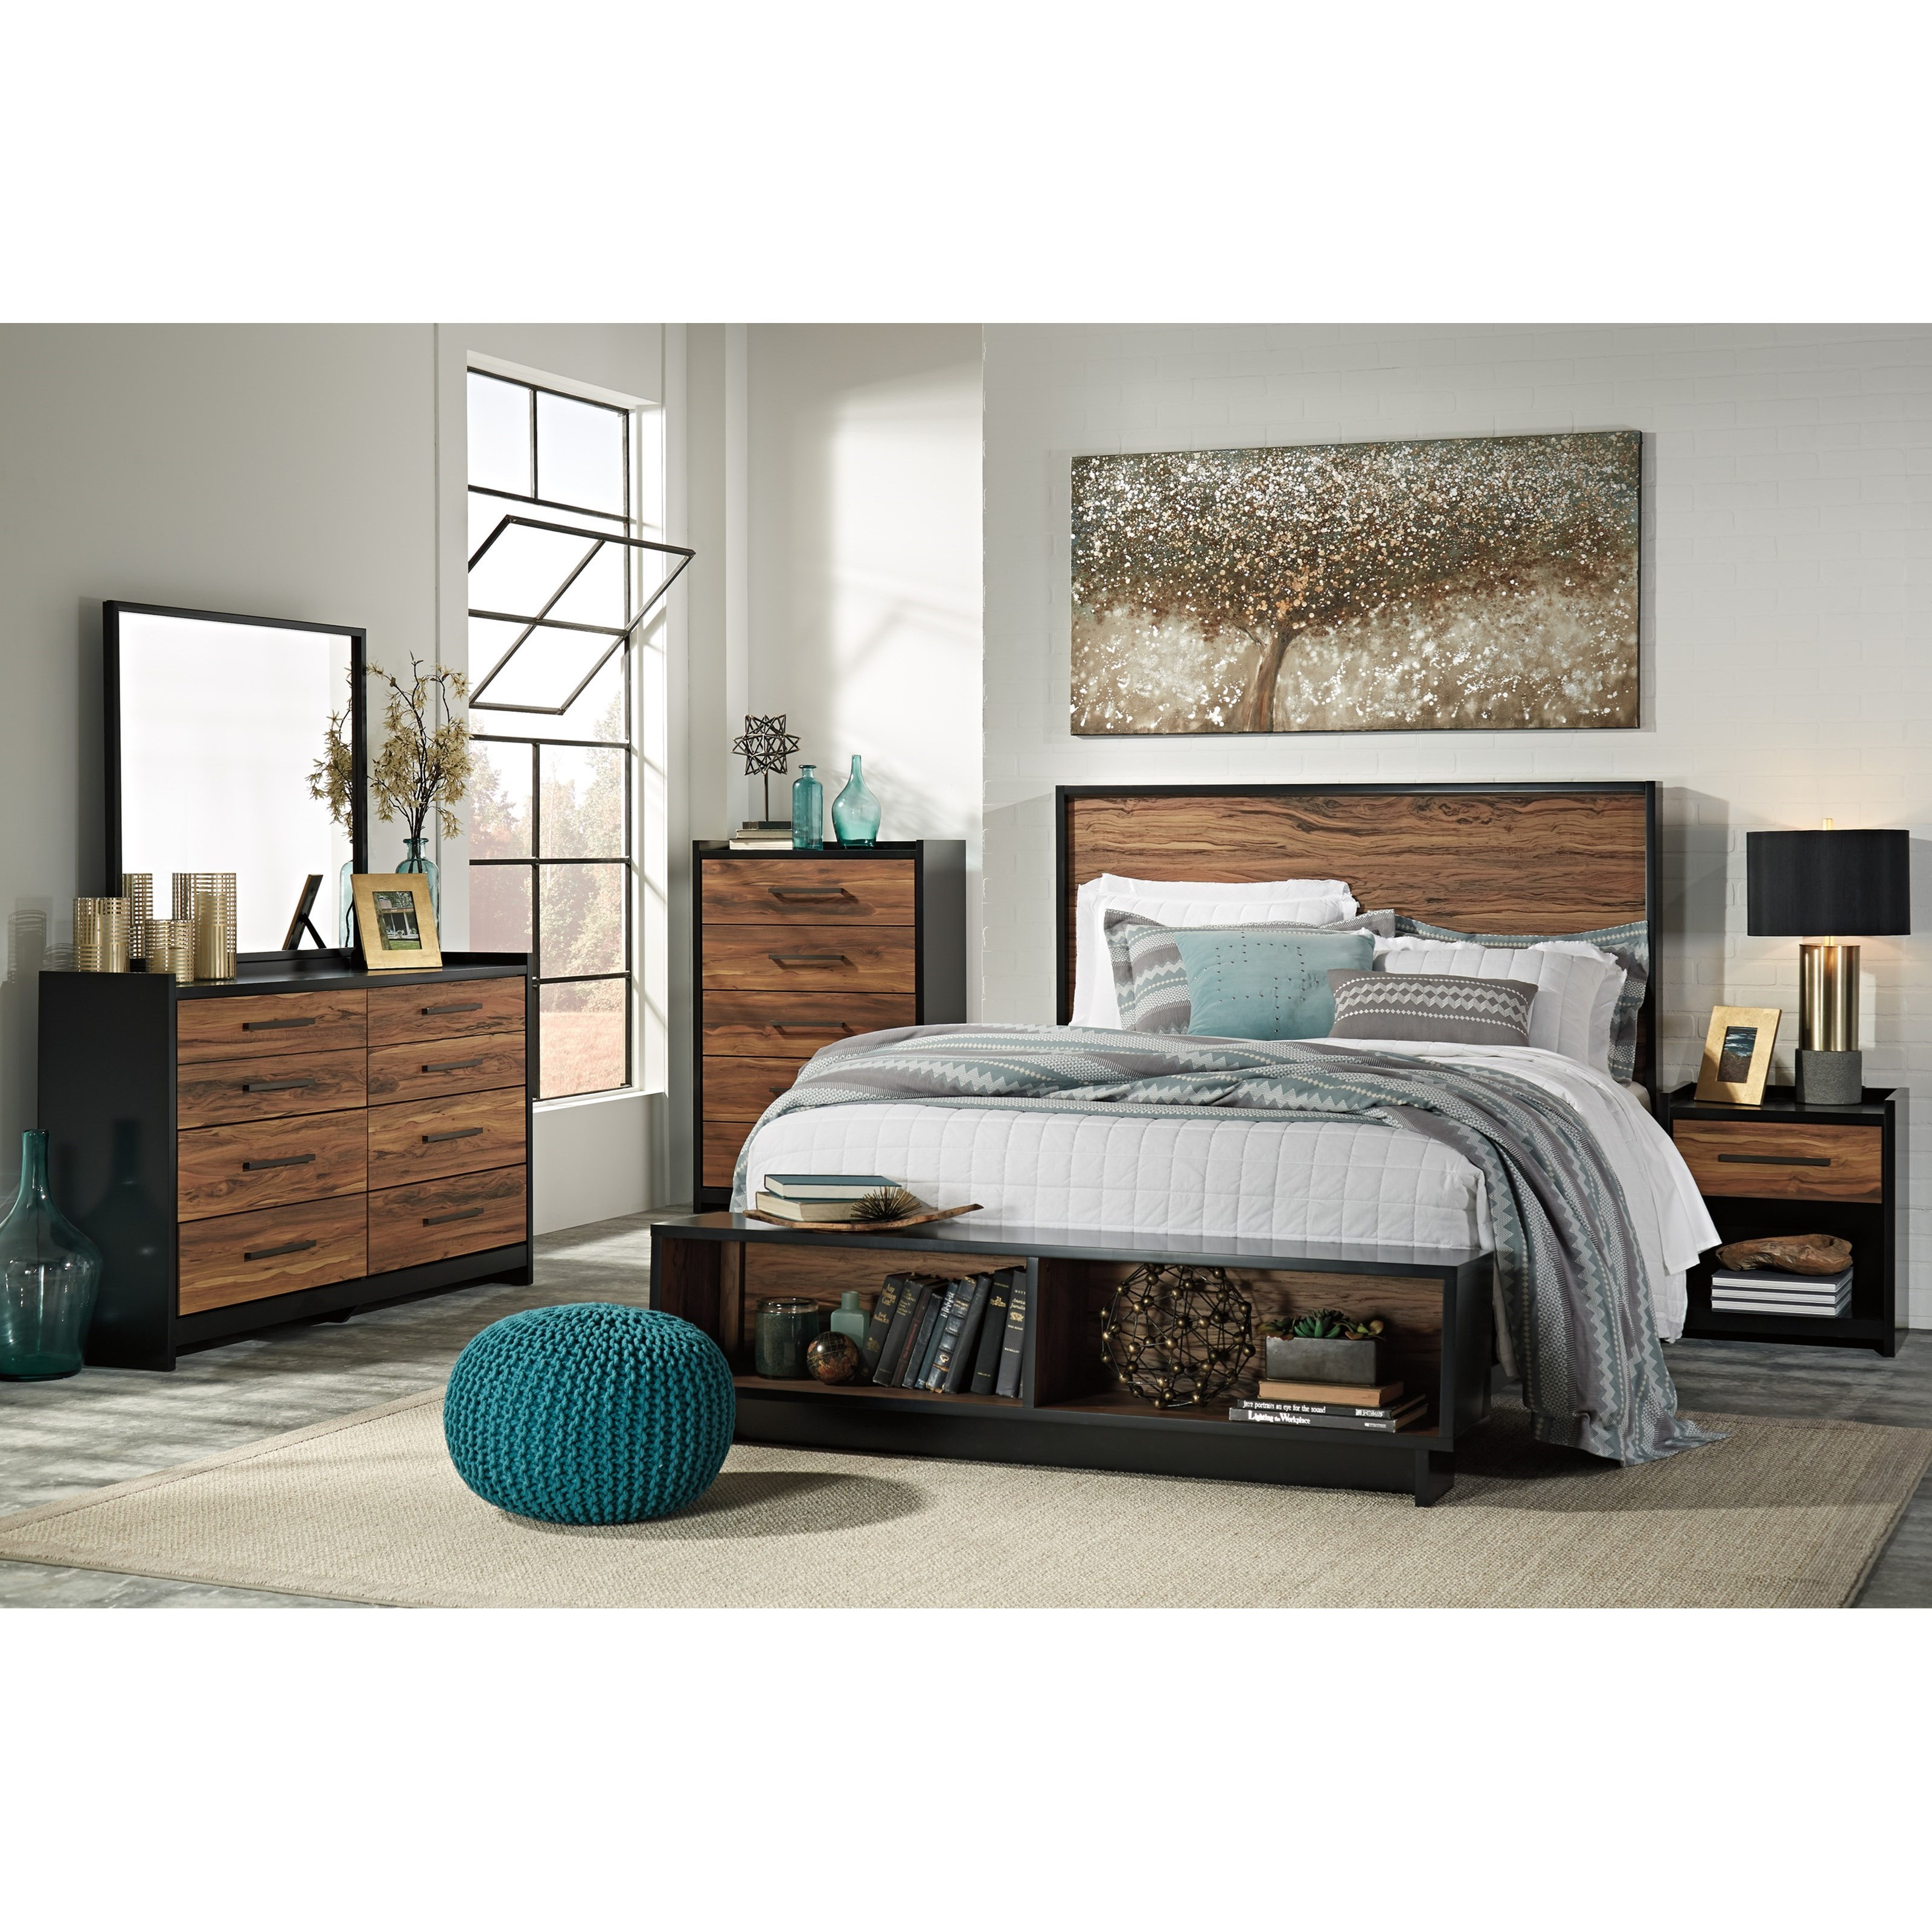 Queen Platform Bed W Storage Bench Footboard By Signature Design By Ashley Wolf And Gardiner